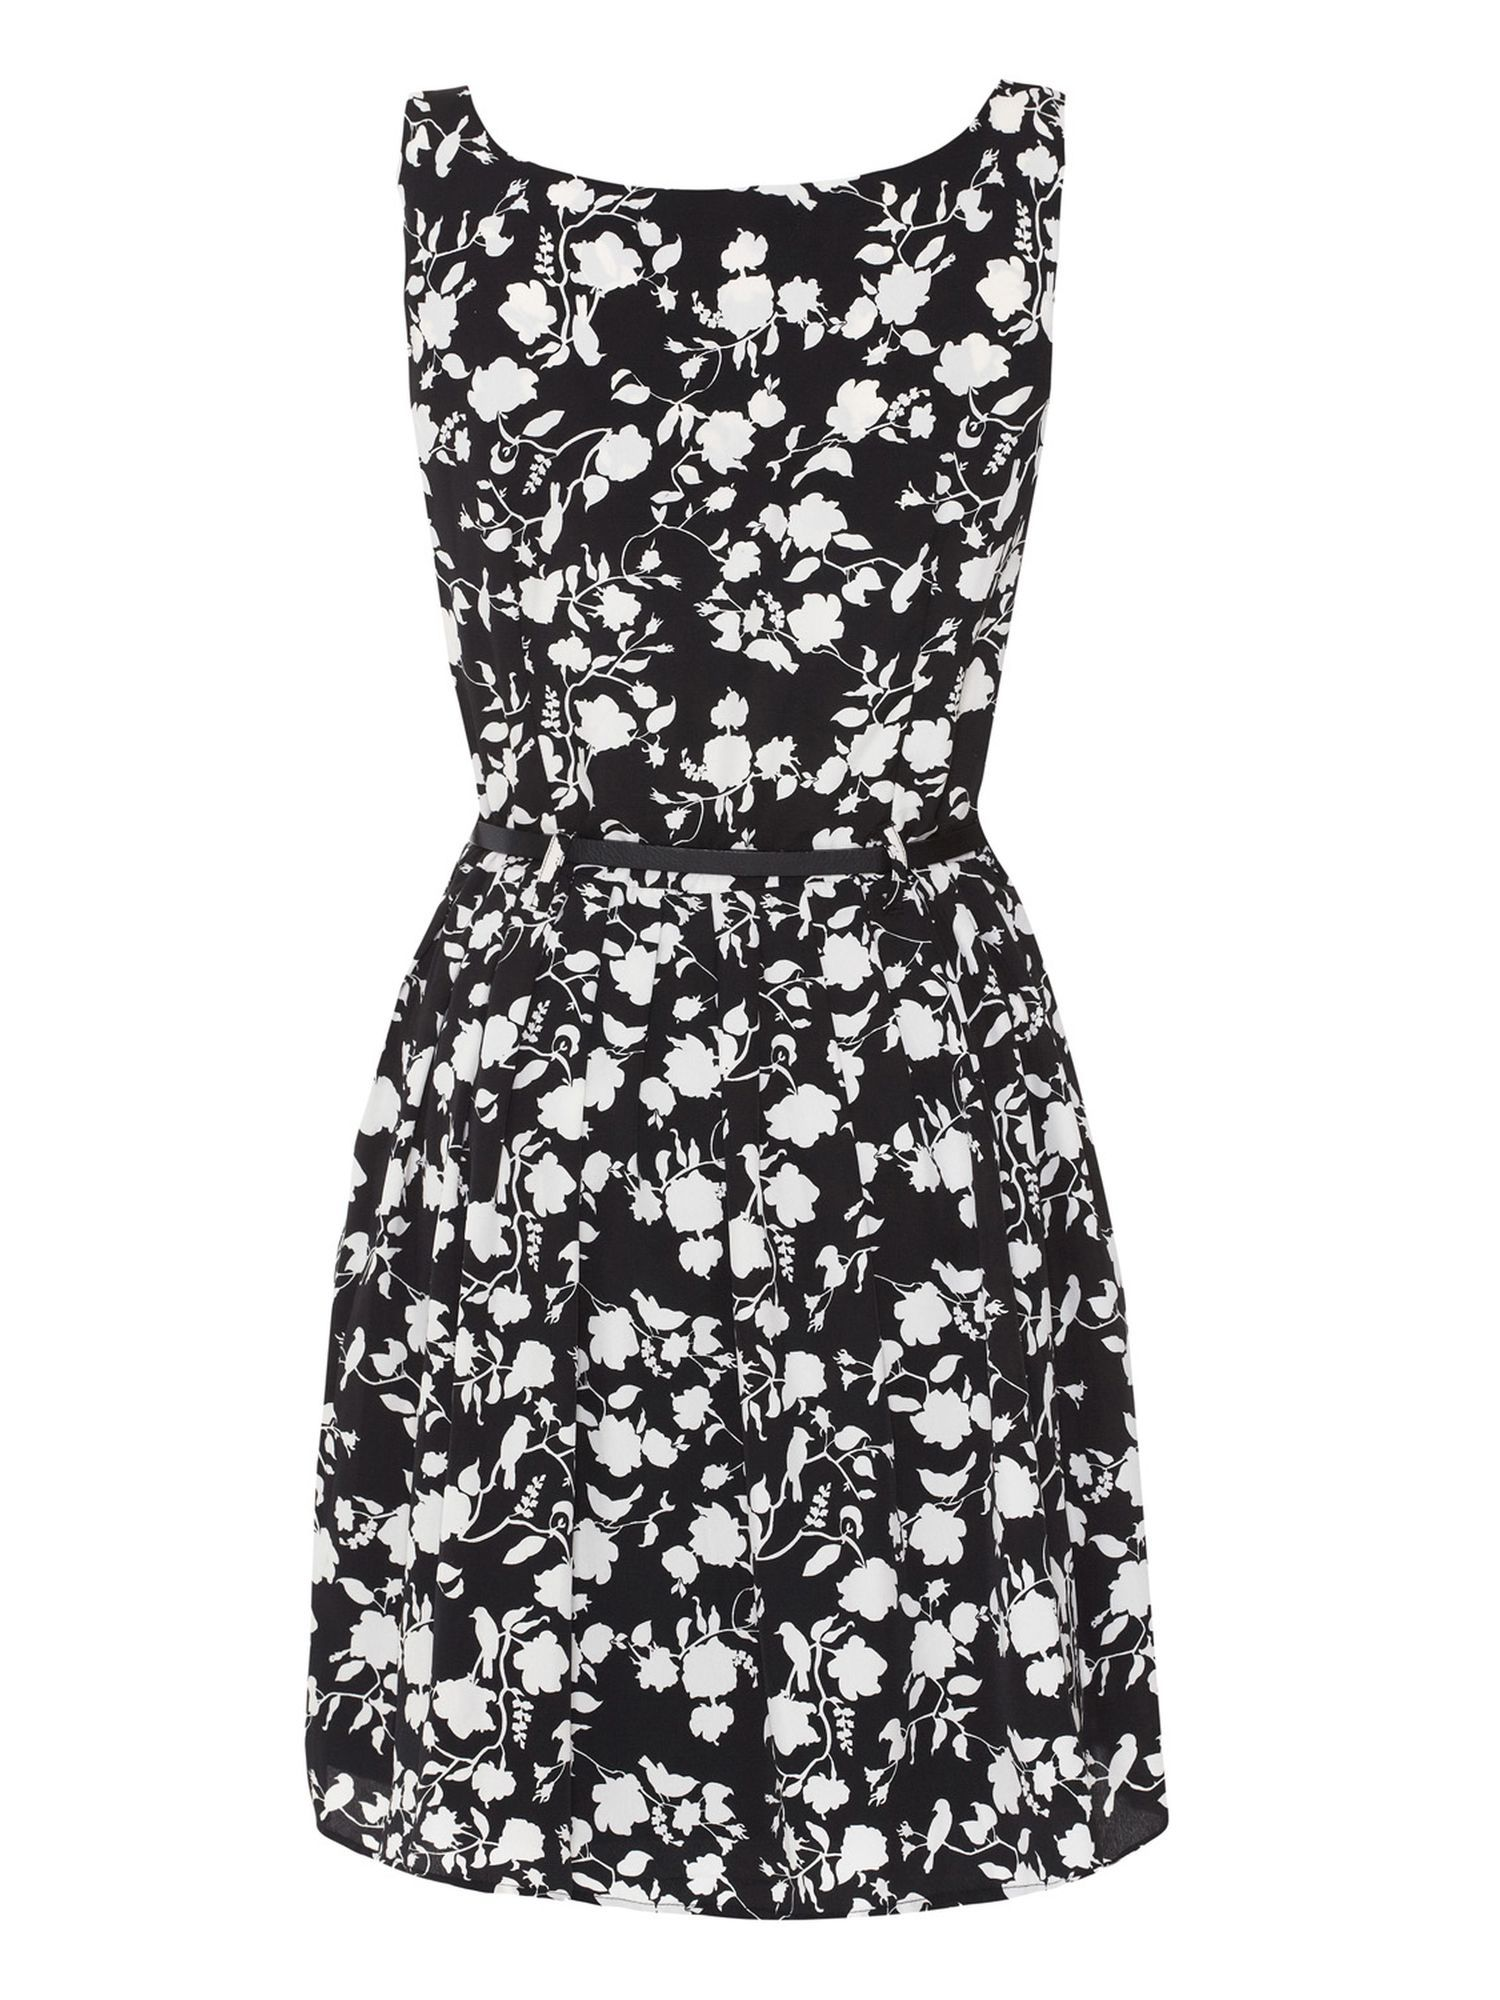 Flower and bird print prom dress